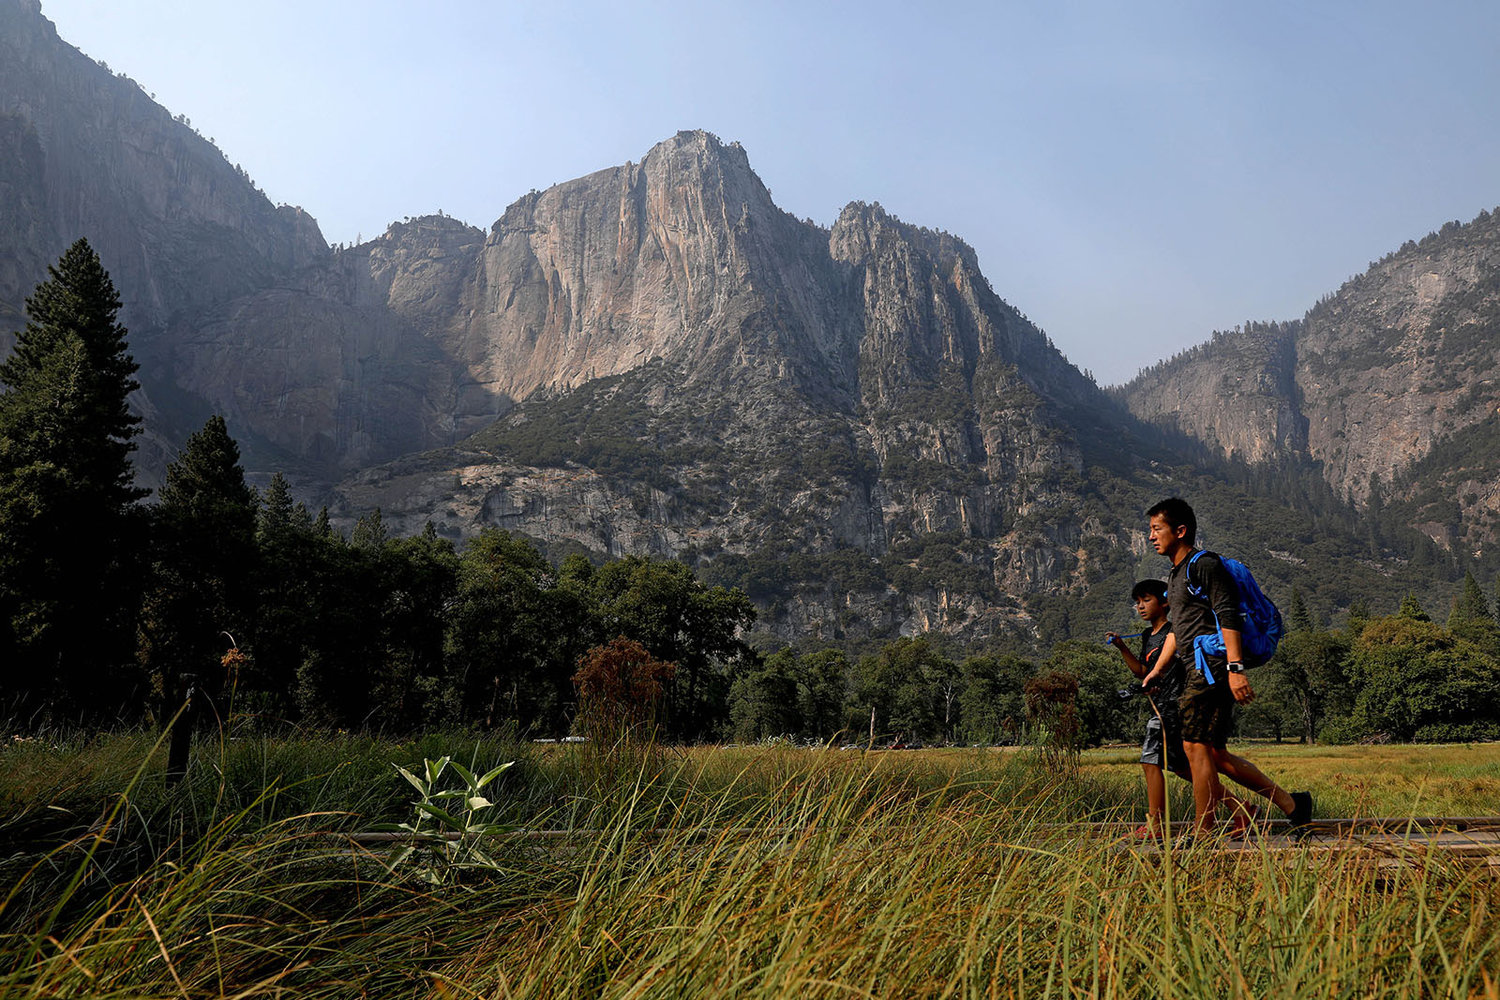 Guests make their way past Columbia Rock in Cook's Meadow in Yosemite, Calif., on Tuesday, Aug. 14, 2018. (Gary Coronado/Los Angeles Times/TNS)